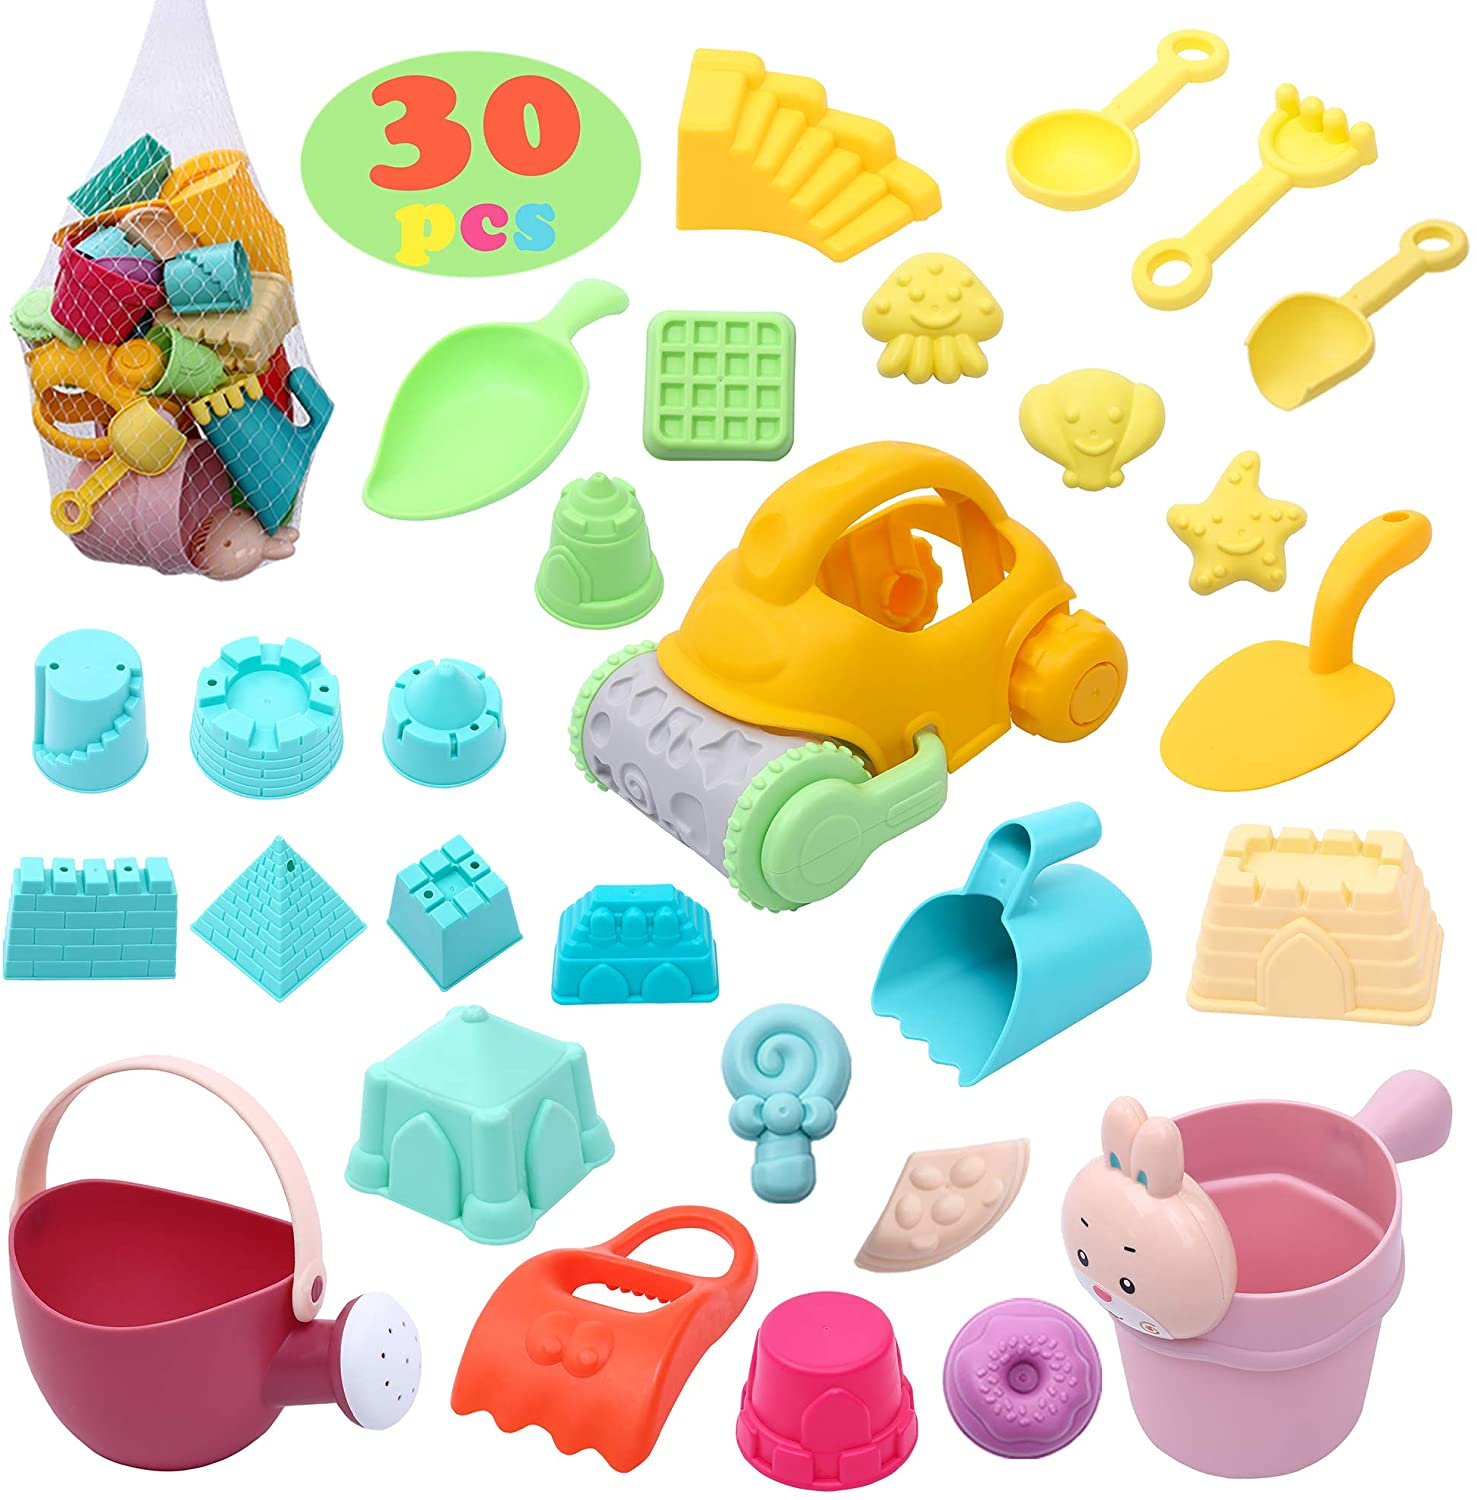 30Pcs Beach Toys Sand Toys Sets for Kids Toddlers Age 3-10 Sandbox Toys with Mesh Beach Bag Includes Sand Castle,Animal Molds,Bucket, Shovels Tool Kit, Watering Can,Baby Beach Toys Outdoor Play